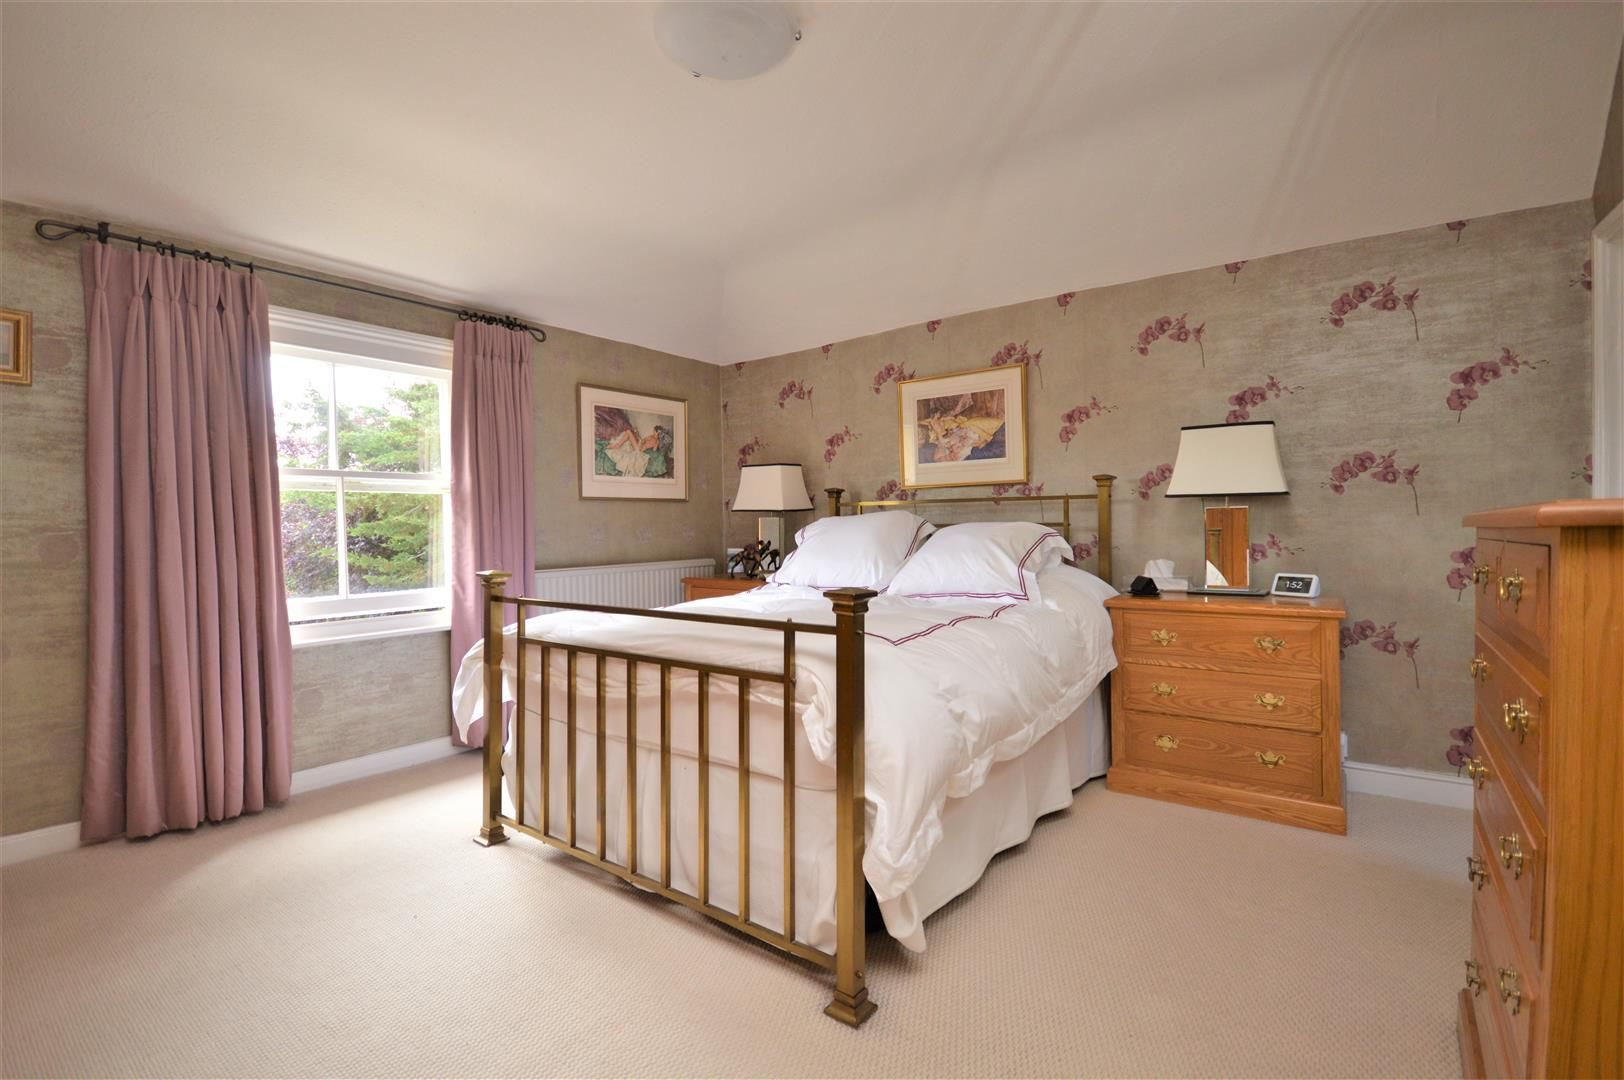 5 bed detached for sale in Stretton Sugwas  - Property Image 21